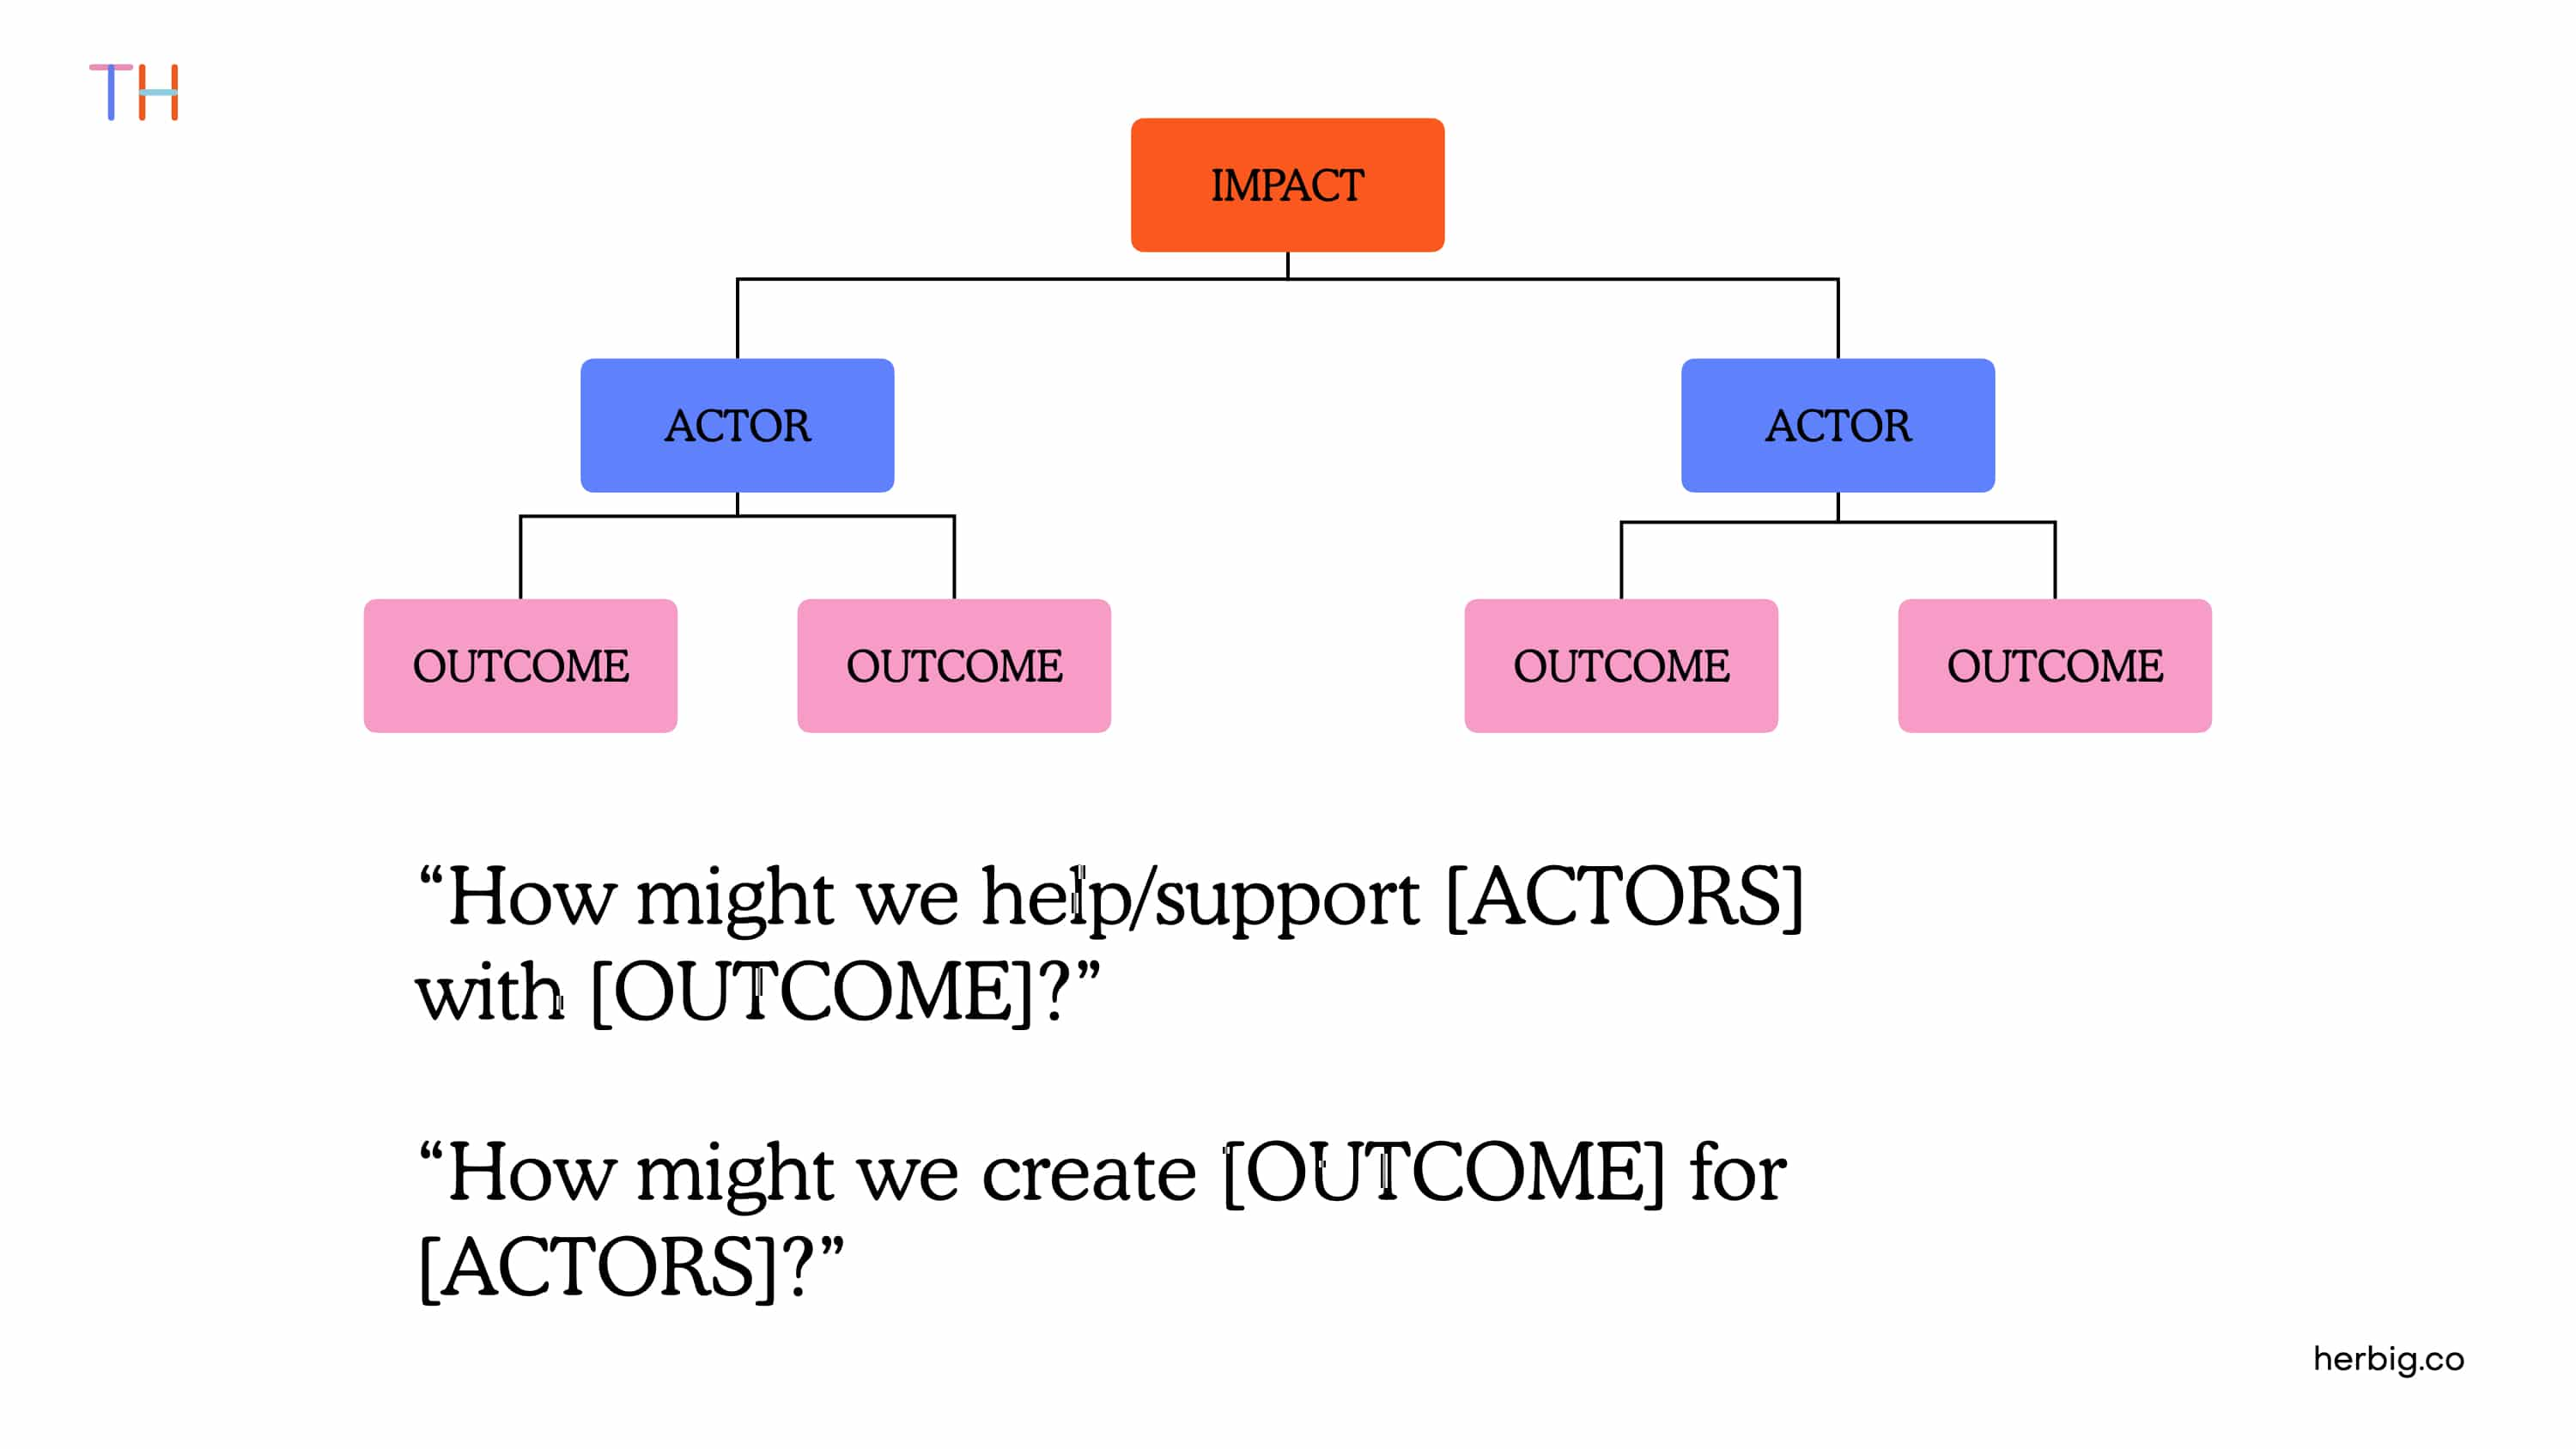 Framing Outcomes through How might we...? Statements